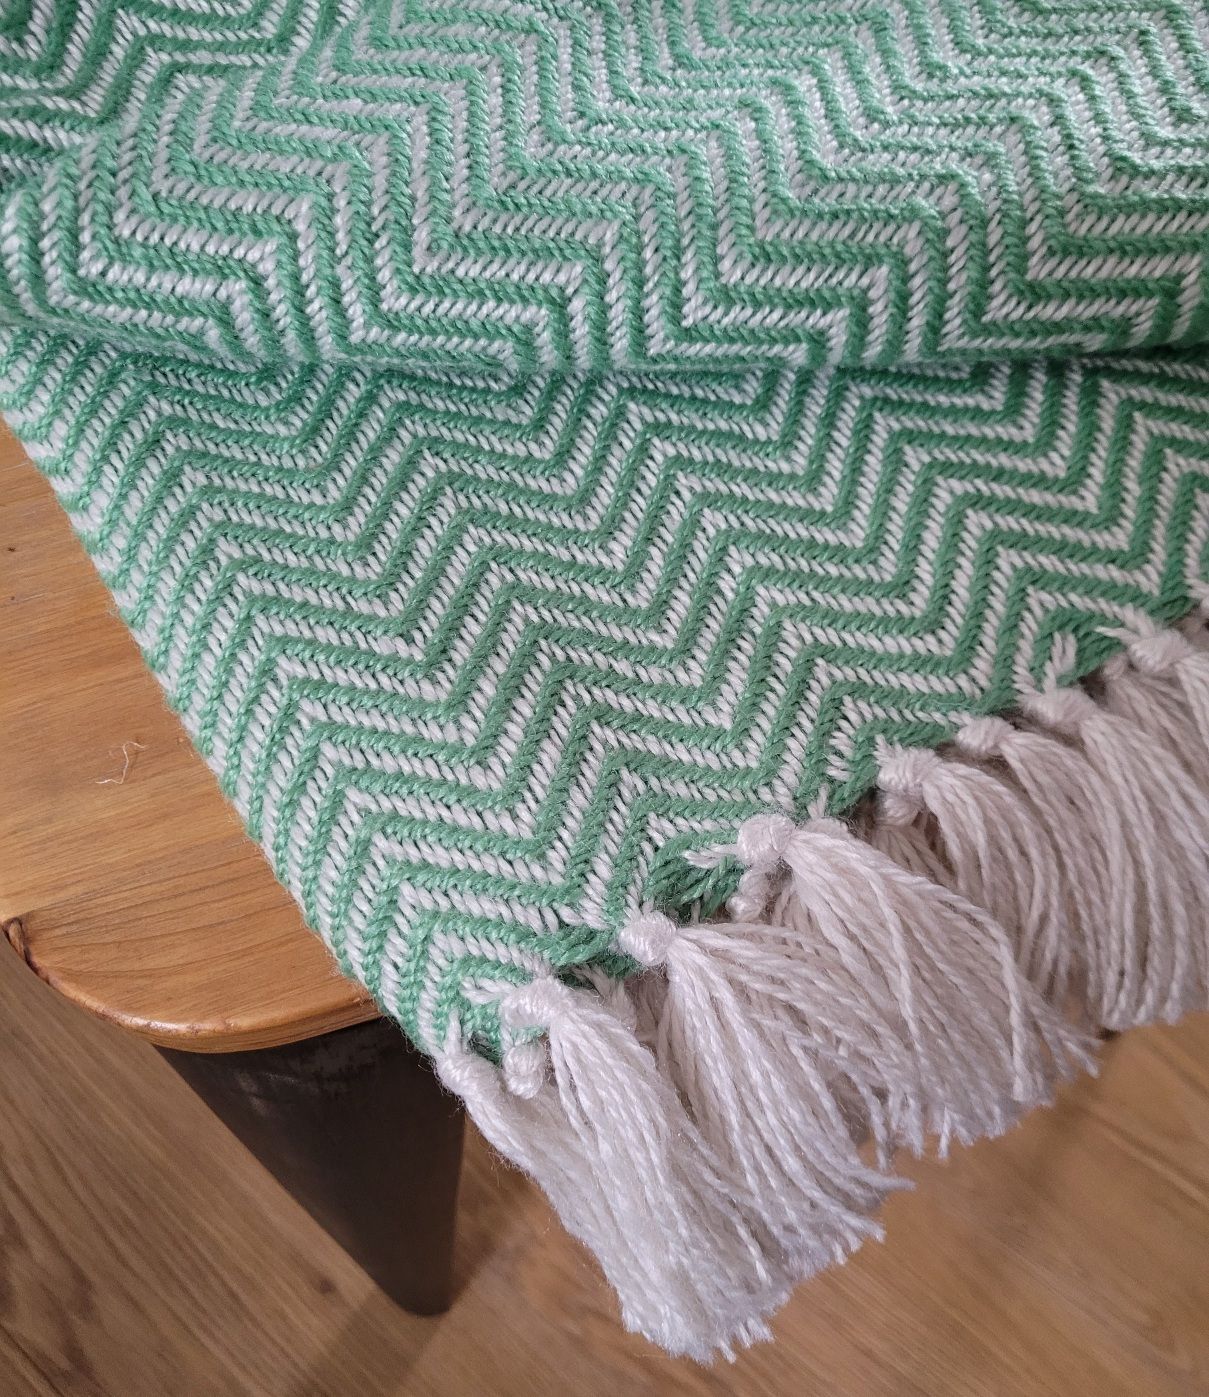 Throws. Herringbone weave. Made from 100% recycled plastic bottles.